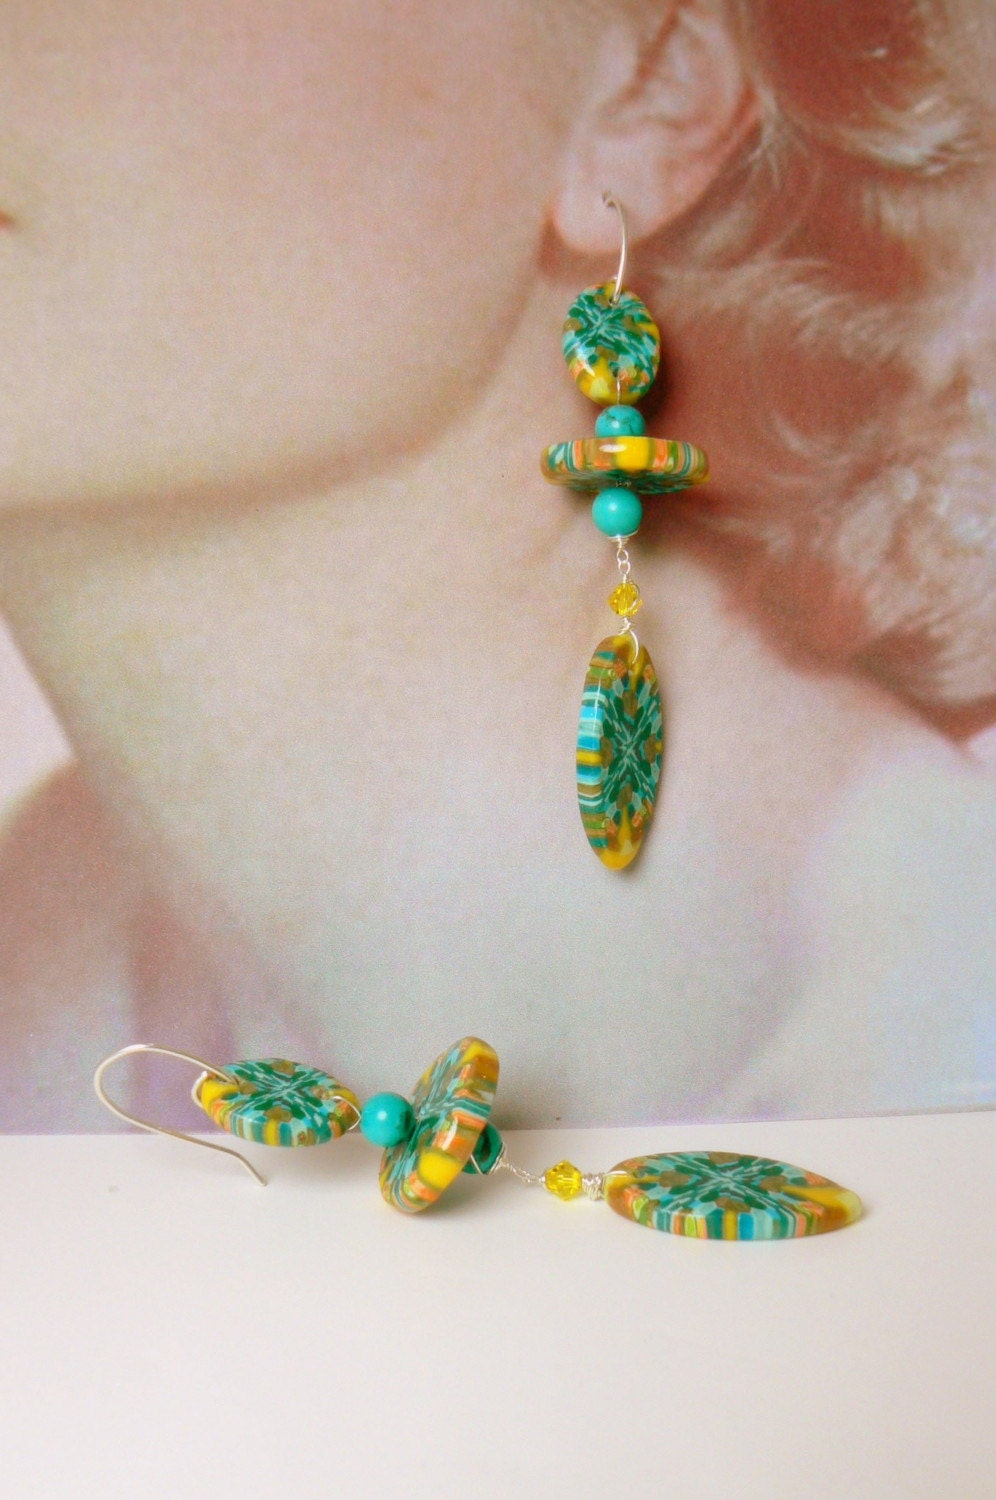 Whimsical Wearable art earrings w genuine Turquoise and Swarovski crystals from etsy.com